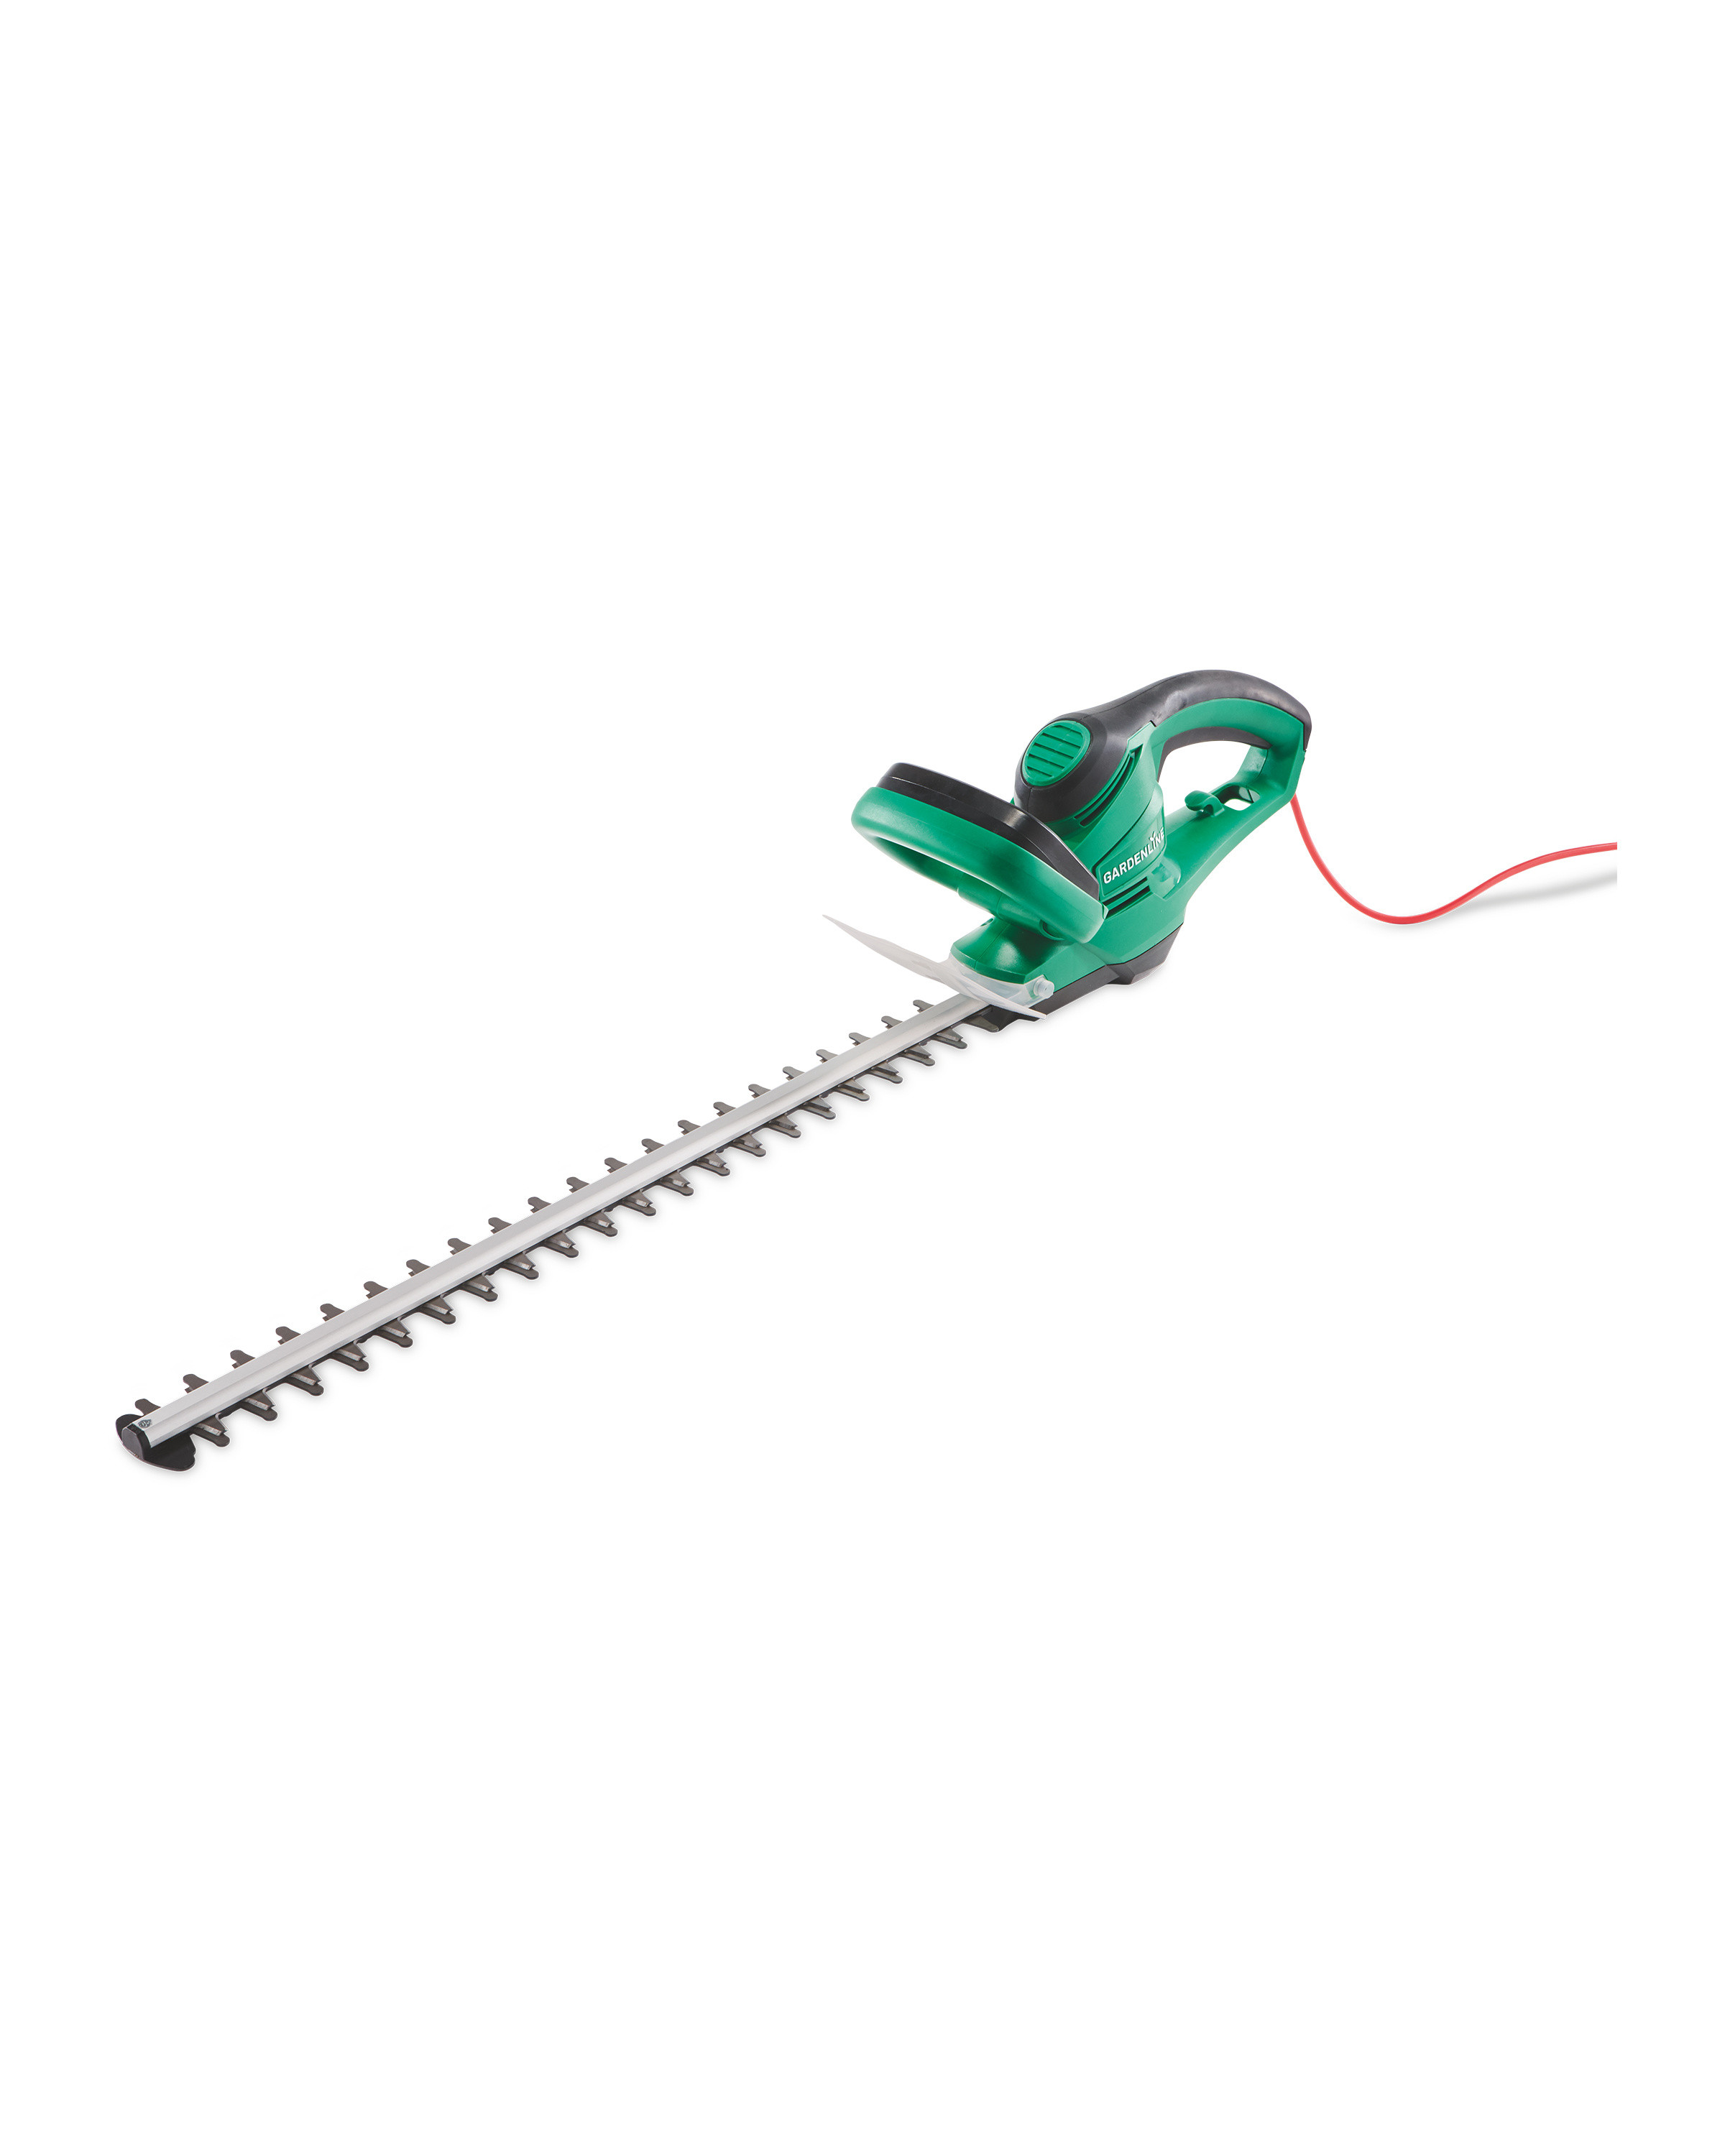 Gardenline GLHT680 Electric Hedge Trimmer Image